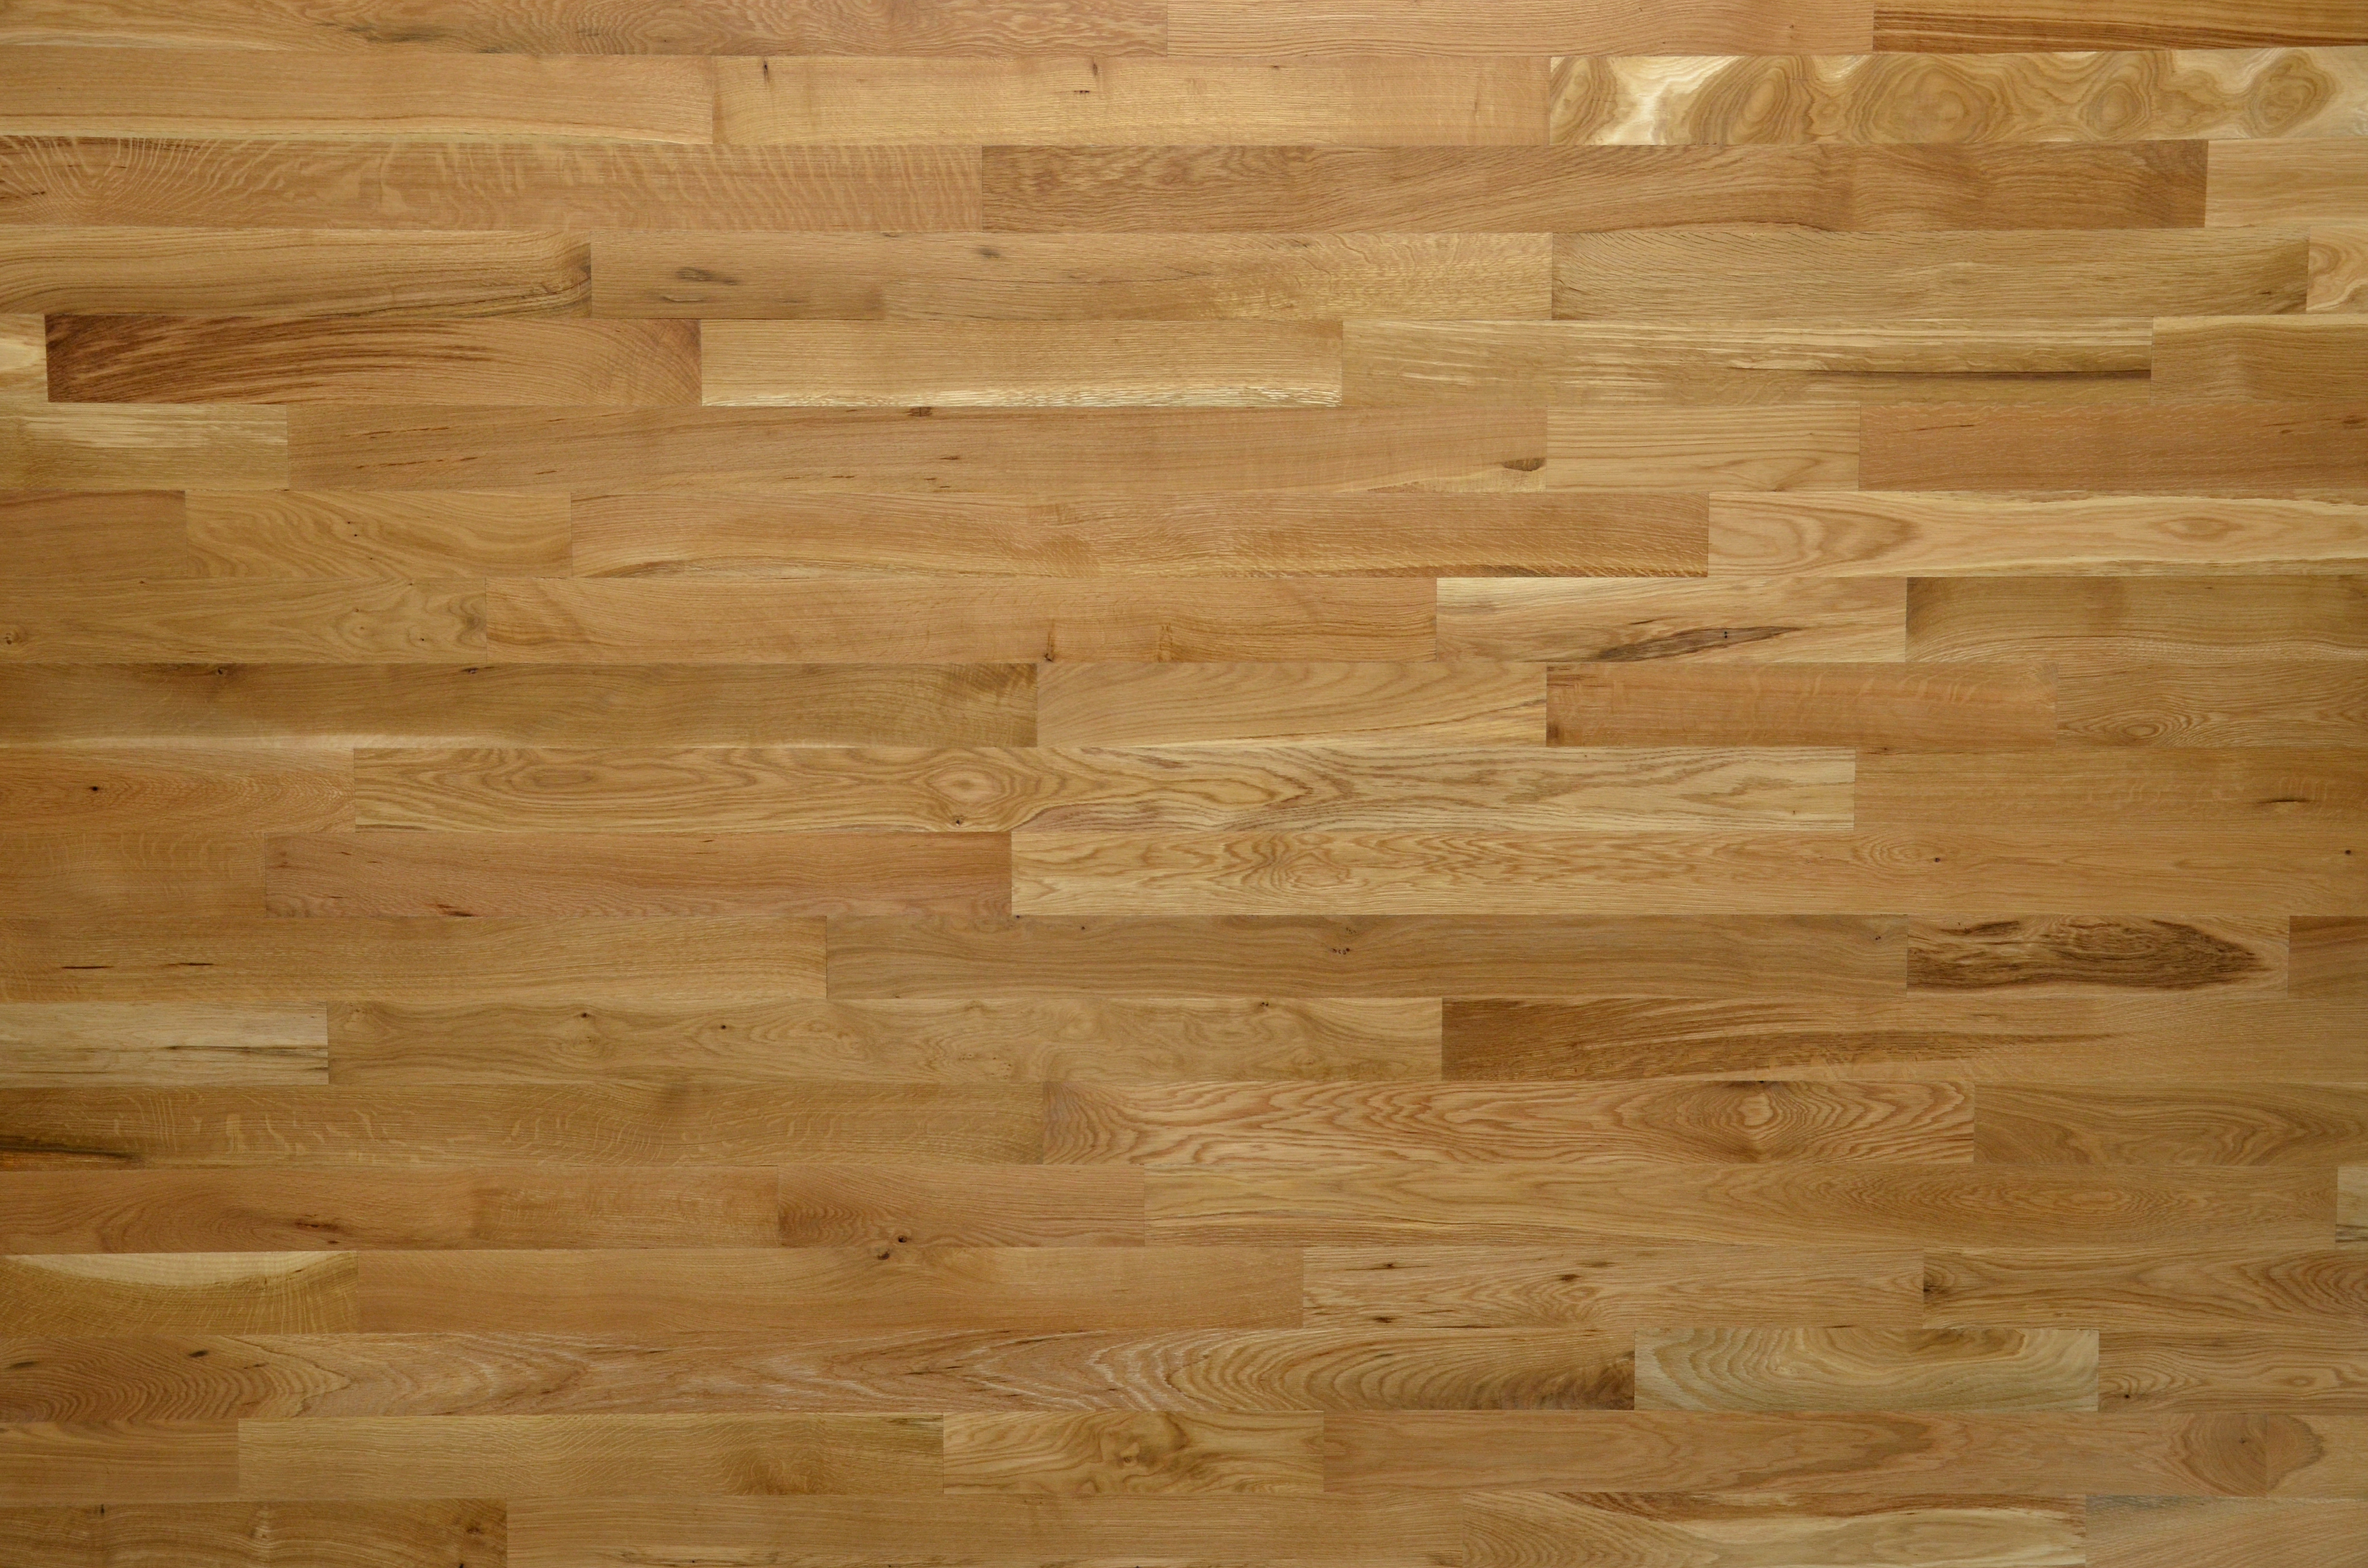 character grade walnut hardwood flooring of lacrosse hardwood flooring walnut white oak red oak hickory throughout 1 common white oak